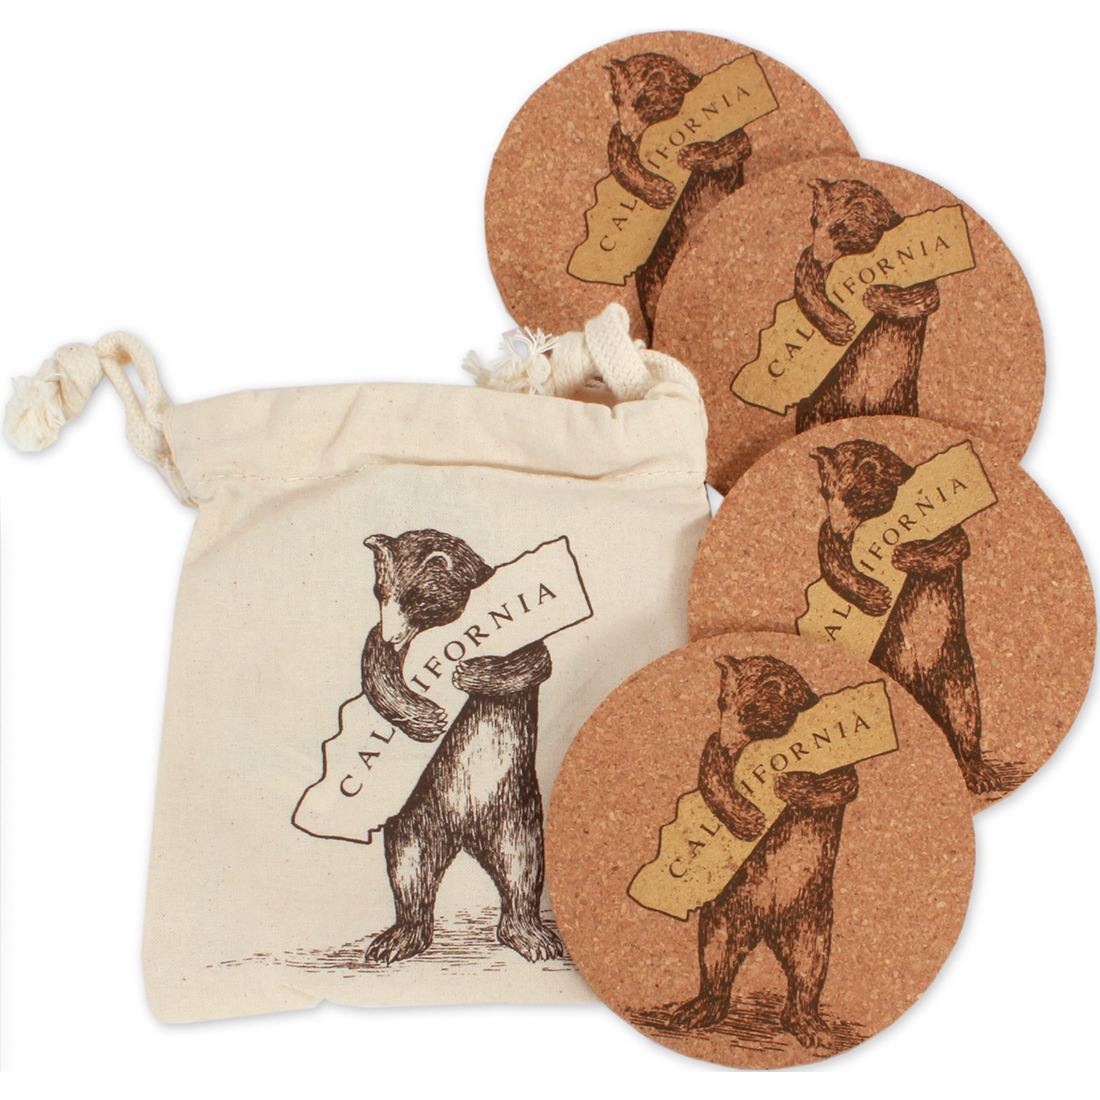 California Bear Hug Coasters set of 4